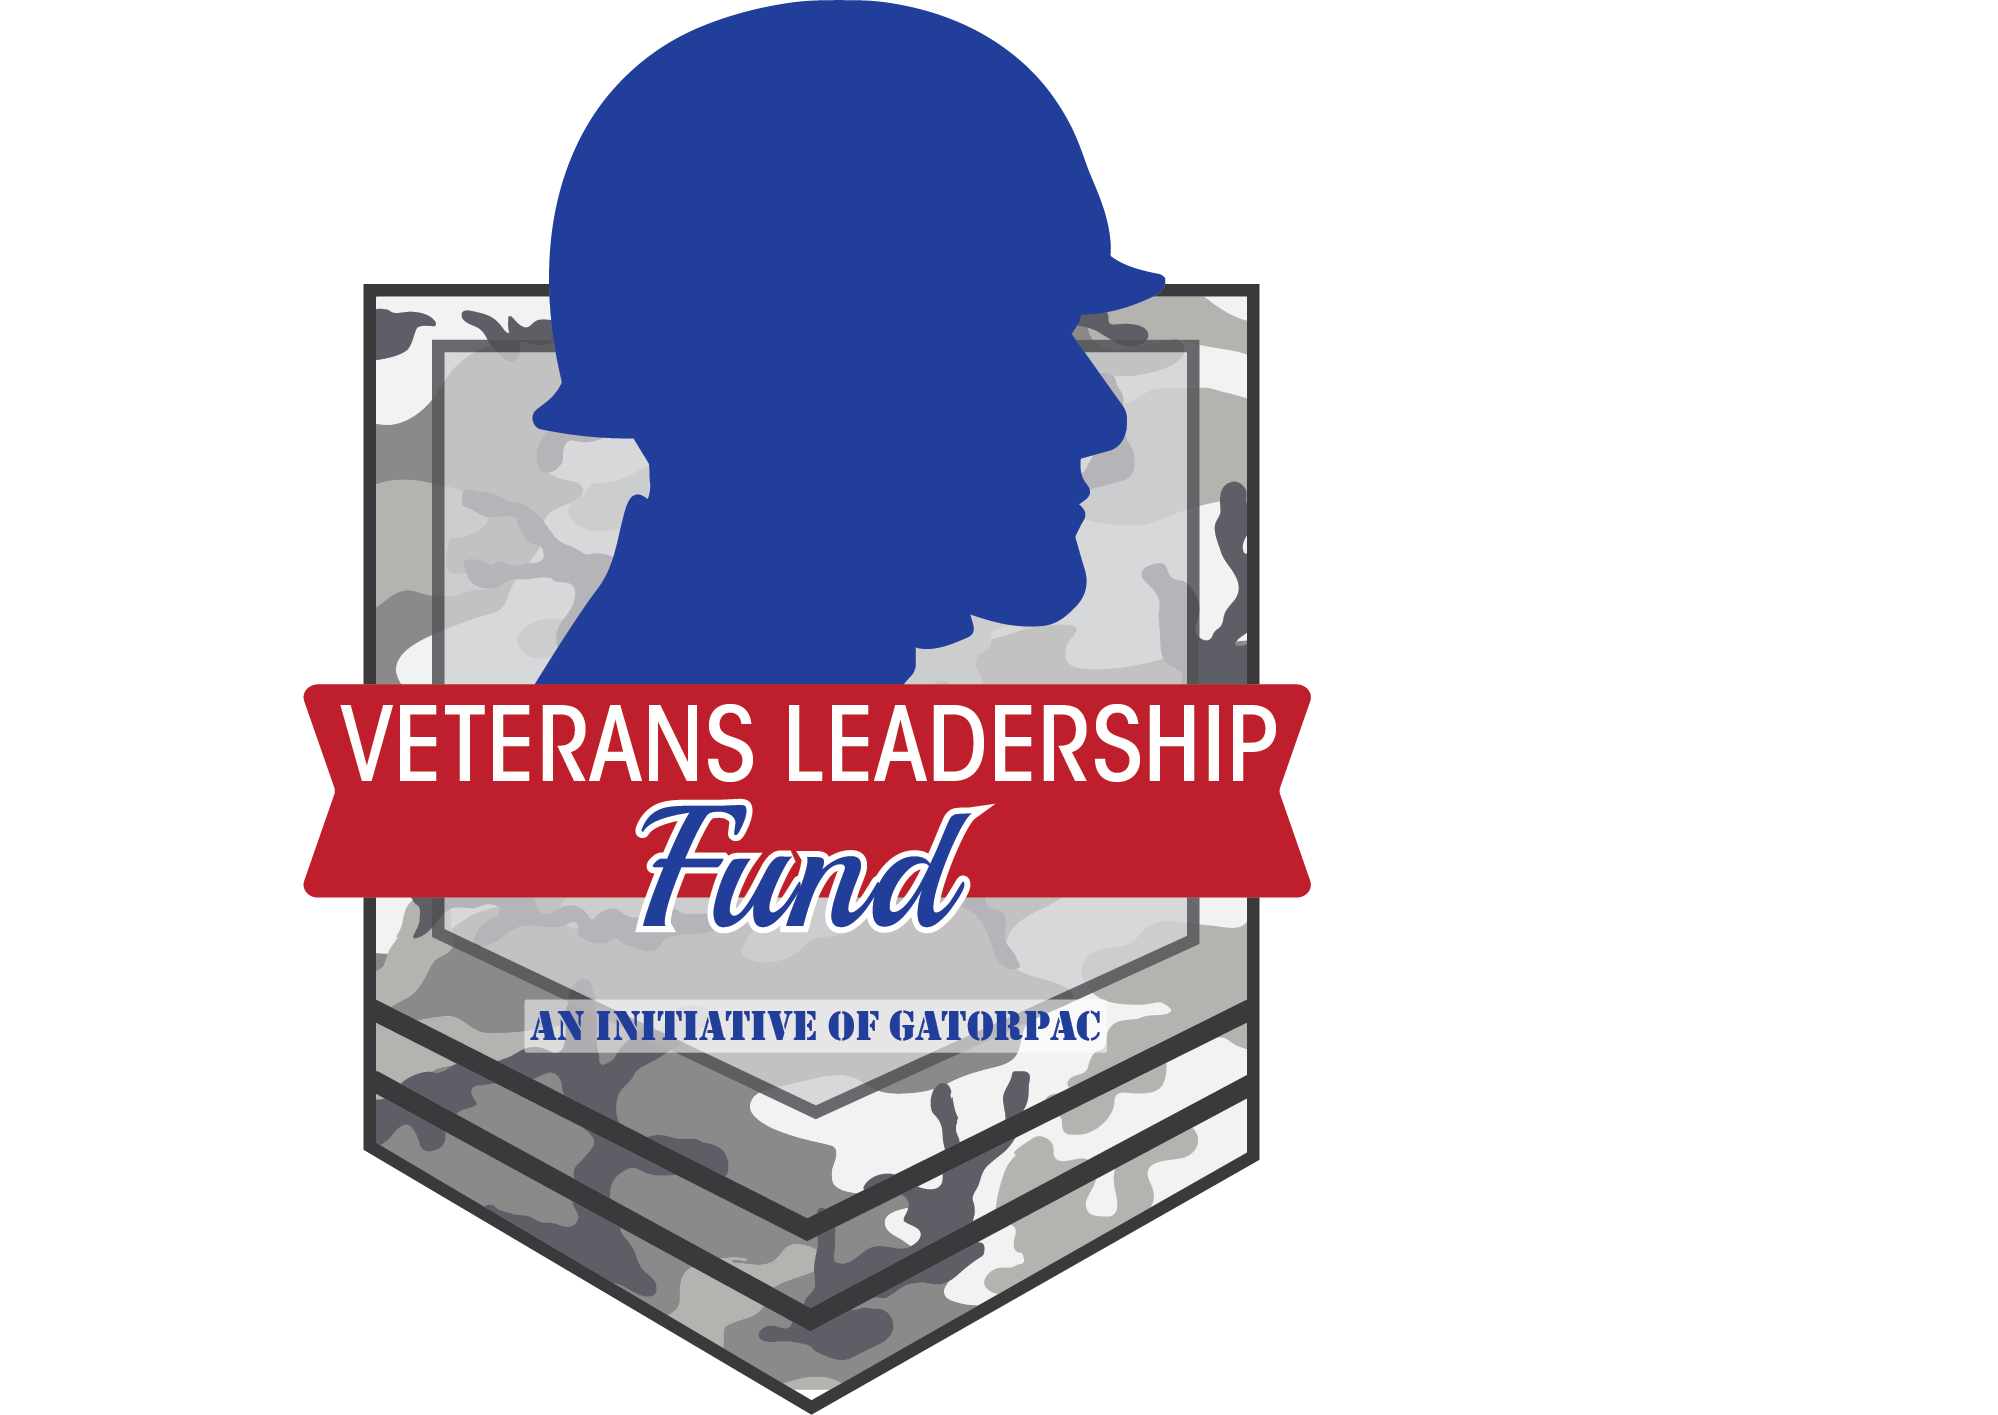 Veterans Leadership Fund - Elect more veterans to congress in 2020 who will:Protect LibertyFight for Limited GovernmentSecure Our ProsperityFight for VeteransSupport and Defend the Constitution